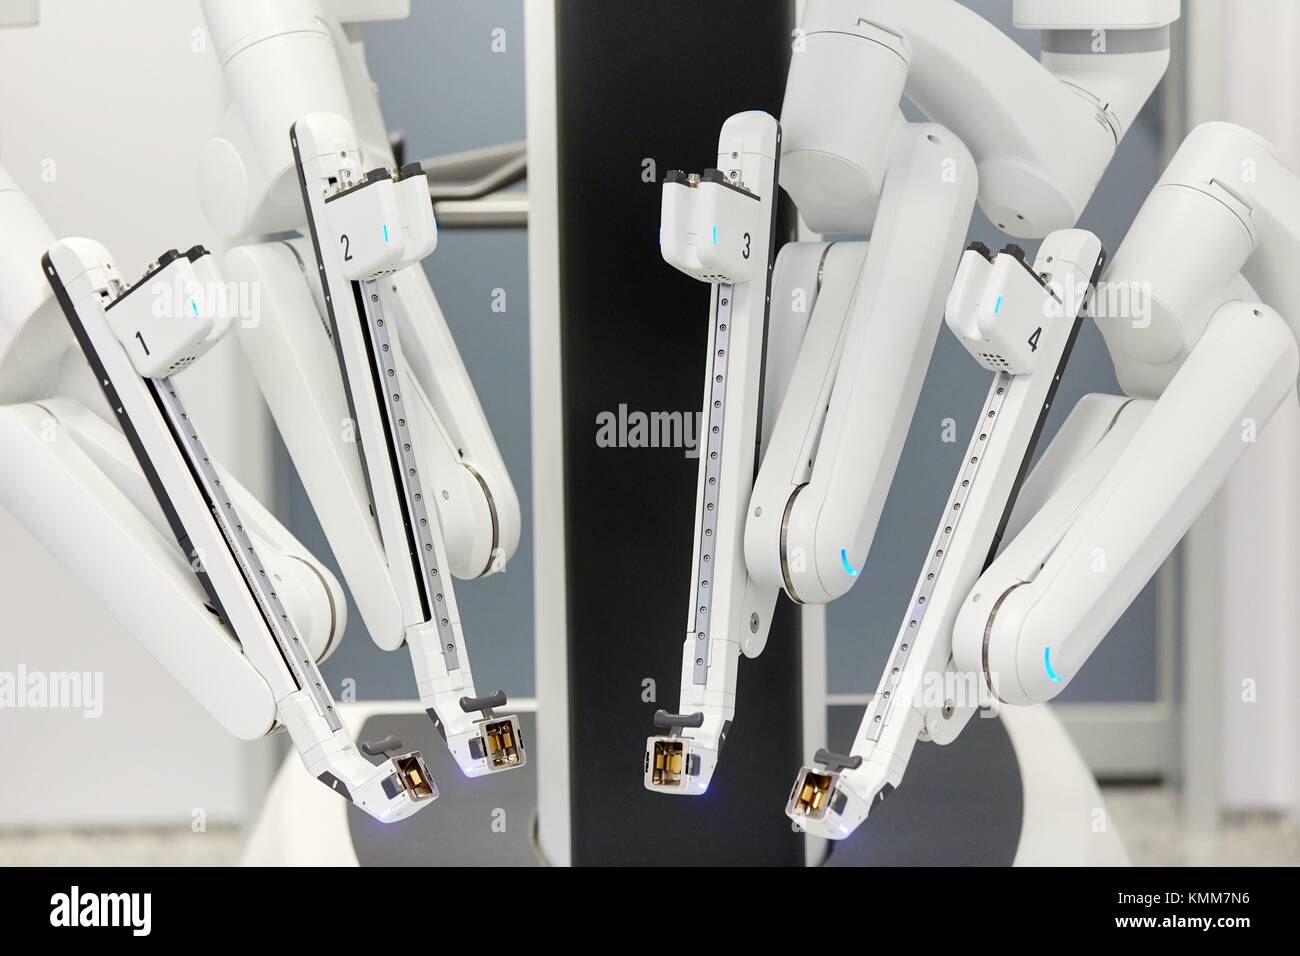 Surgical Treatment of Prostate Cancer, Radical prostatectomy, Da Vinci Surgical Robot, Urology, Surgery, Operating - Stock Image